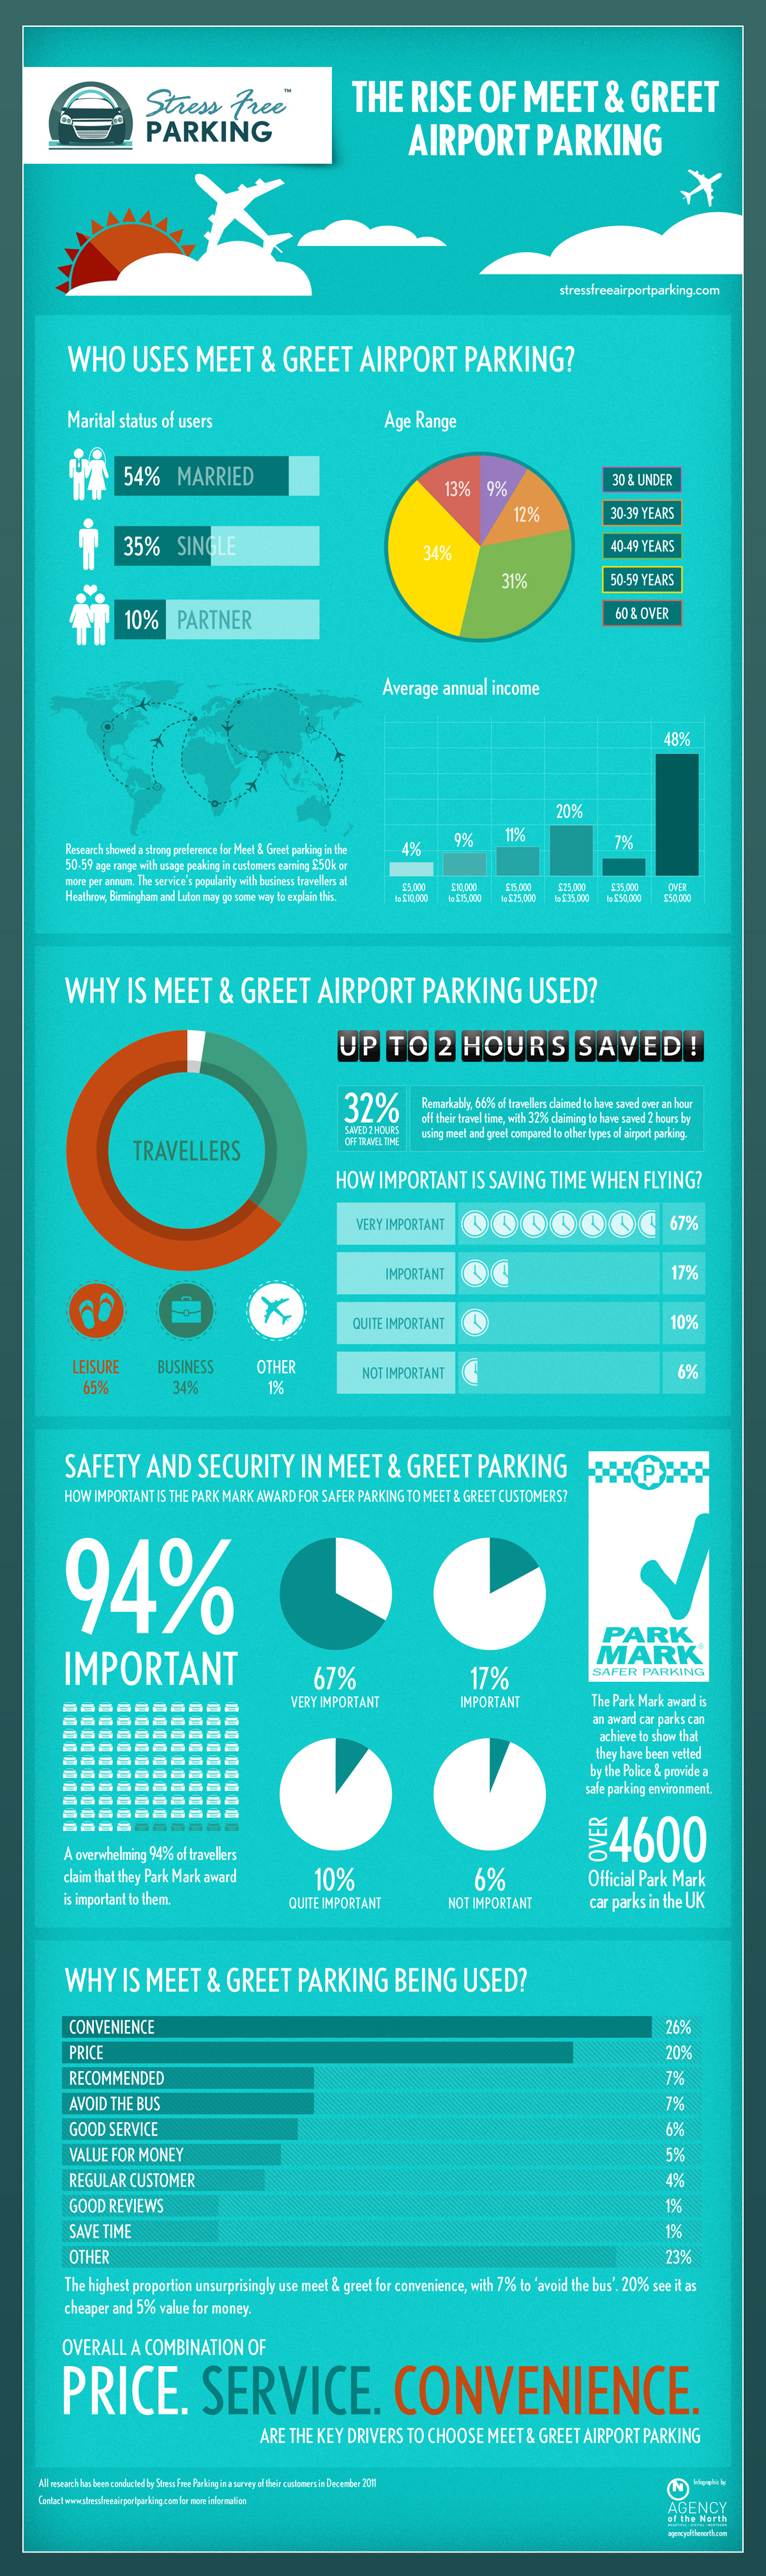 The Rise Of Meet And Greet Airport Parking Uk Infographic